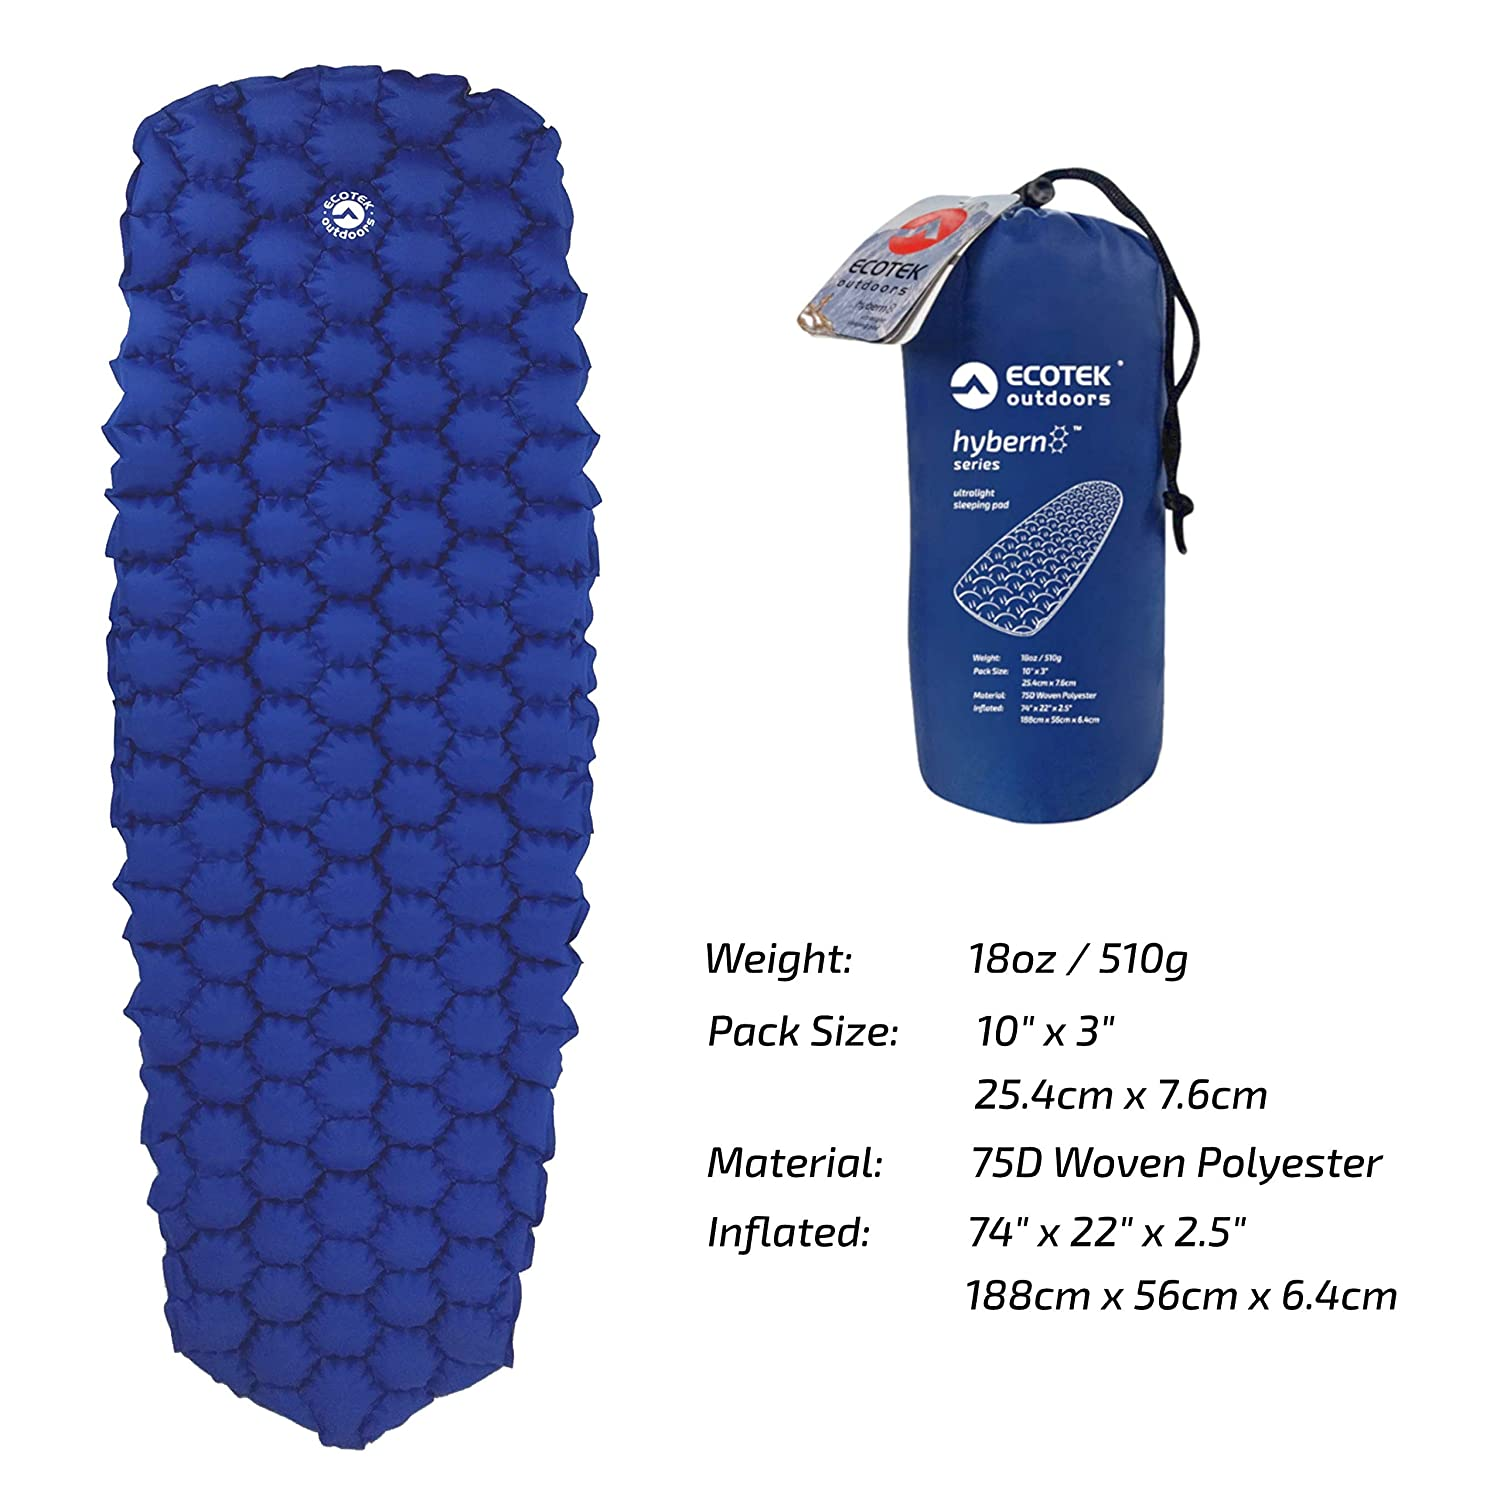 ECOTEK Outdoors Hybern8 Ultralight Inflatable Sleeping Pad for ...